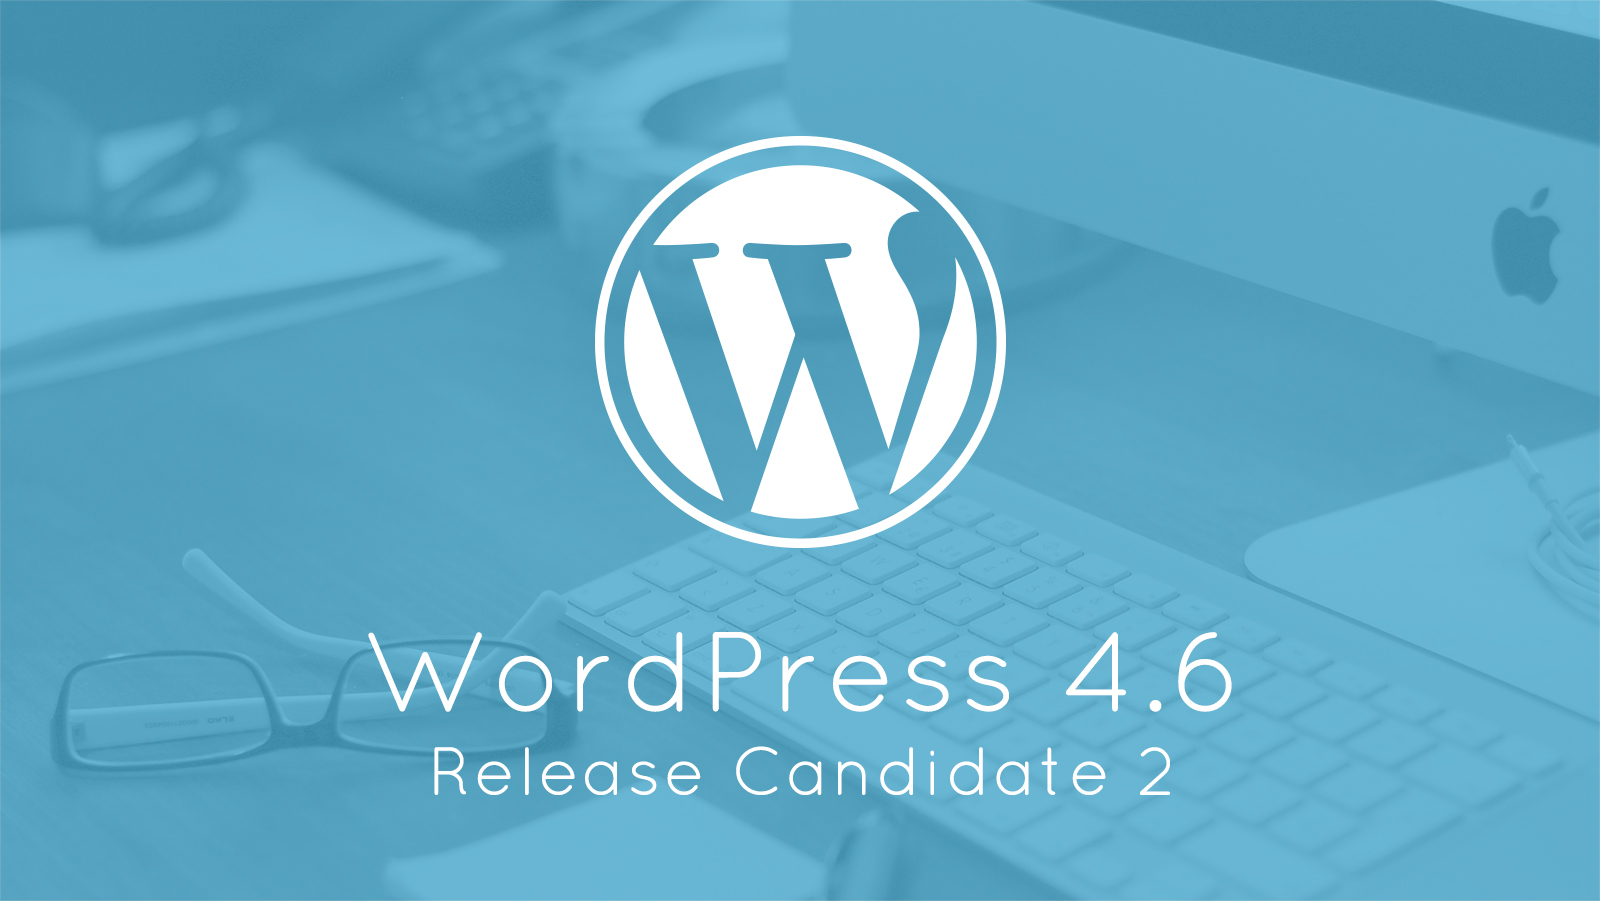 WordPress 4.6 Release Candidate 2